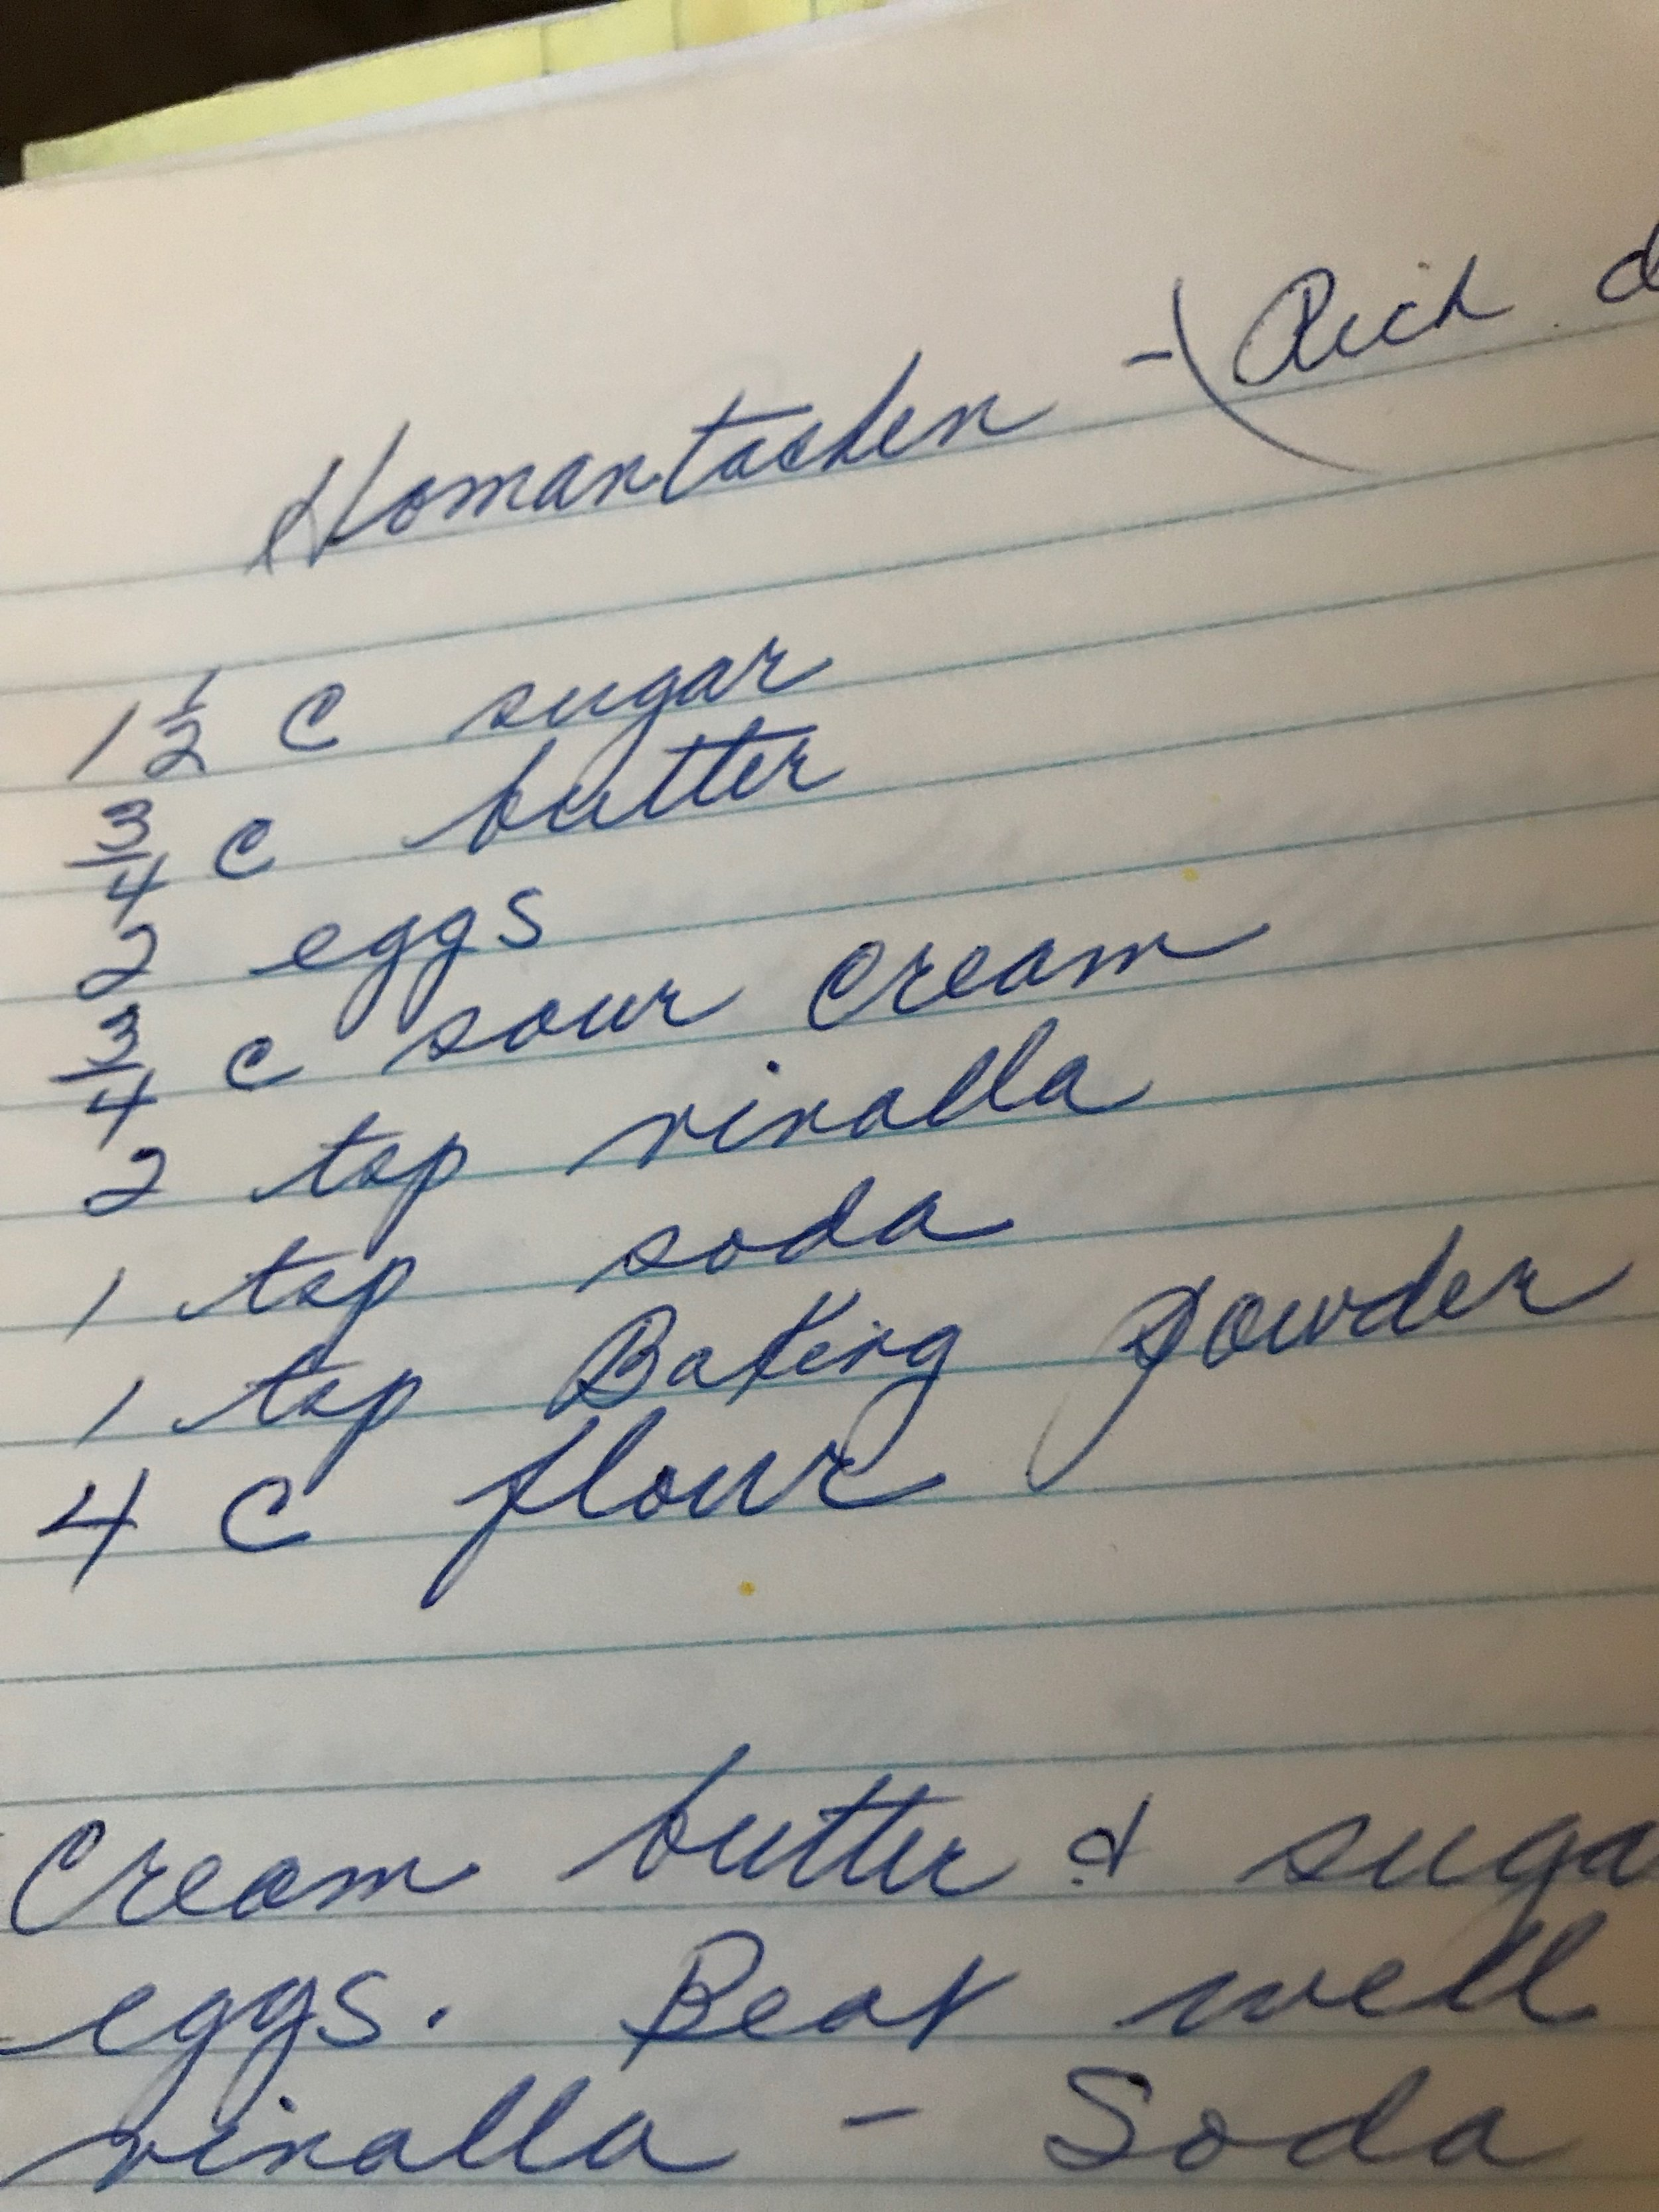 Georgie's recipe in her handwriting